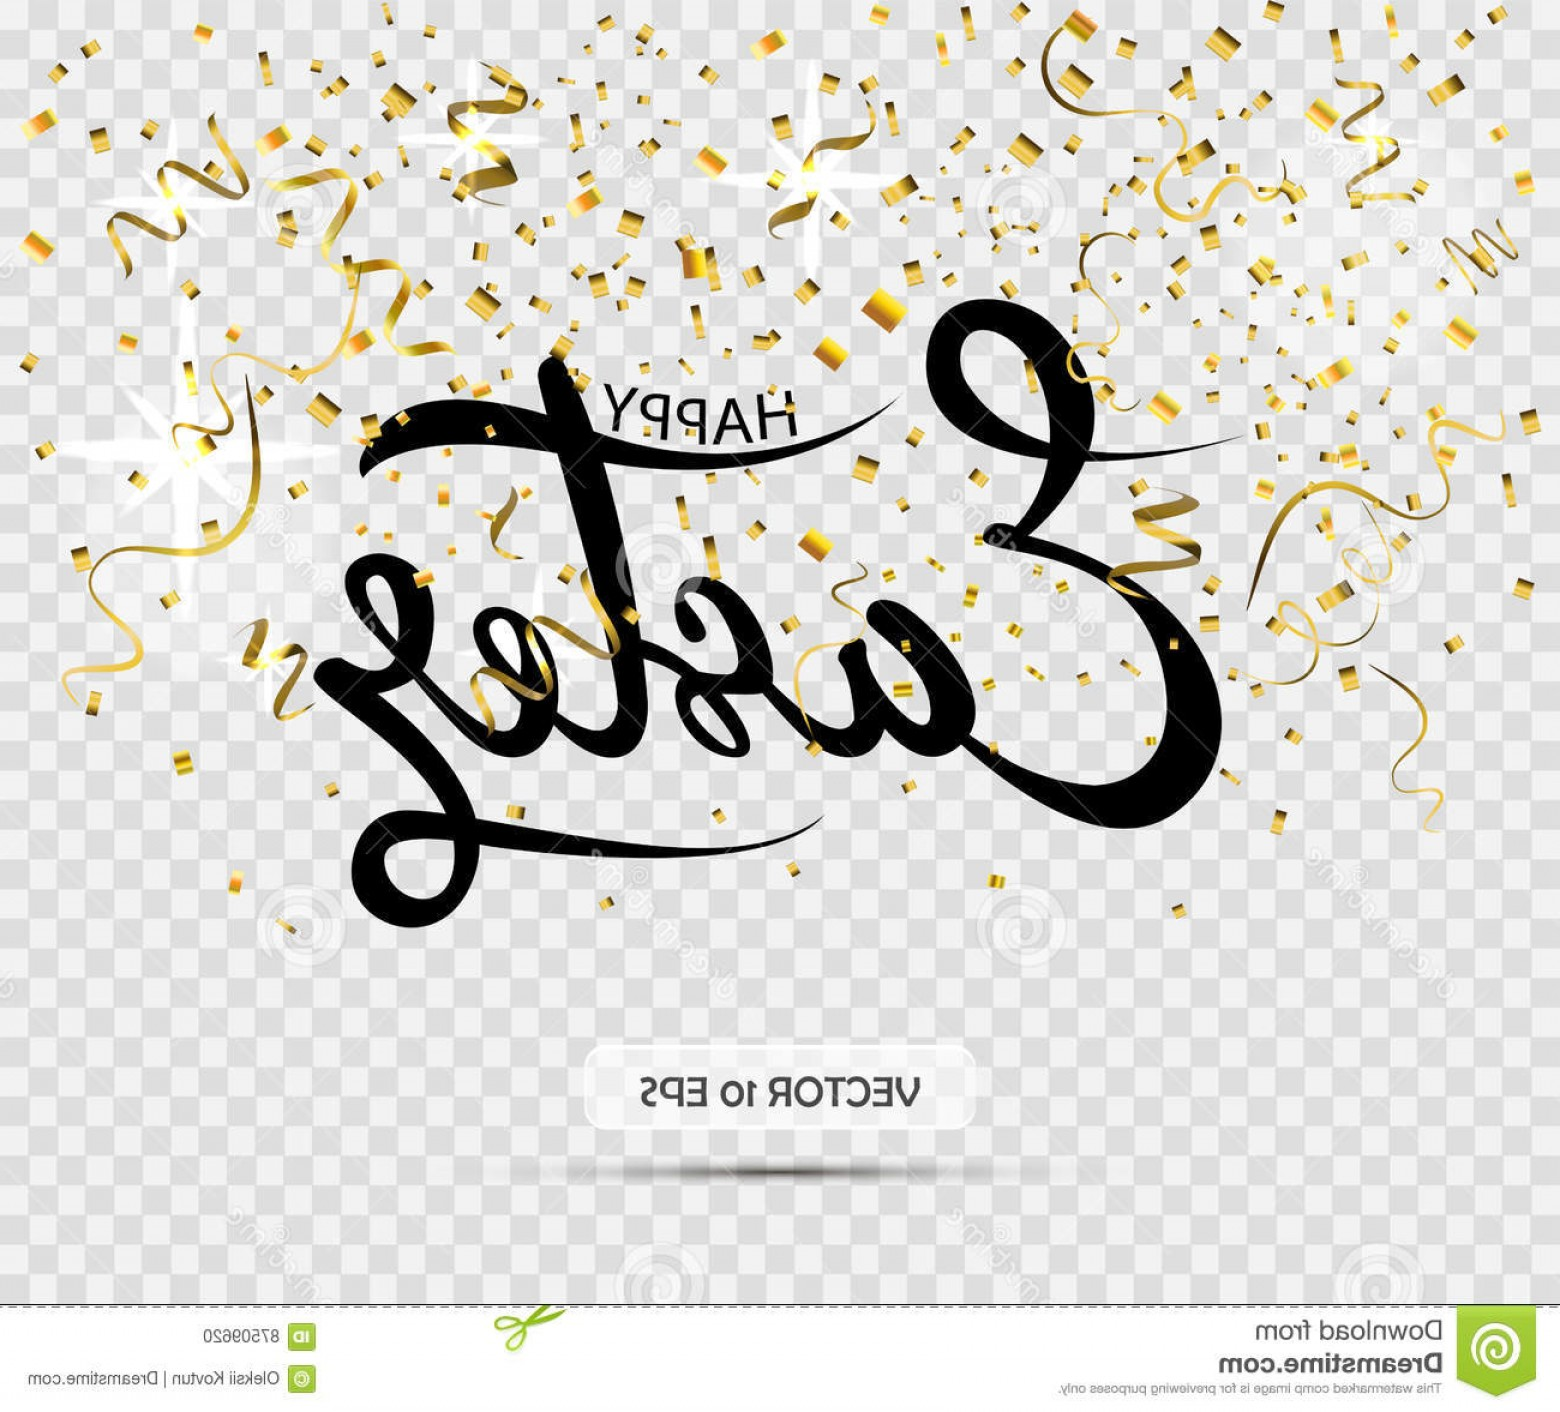 Easter Vector Art No Background: Stock Illustration Happy Easter Vector Lettering Gold Confetti Transparent Background Hand Written Phrase Modern Image